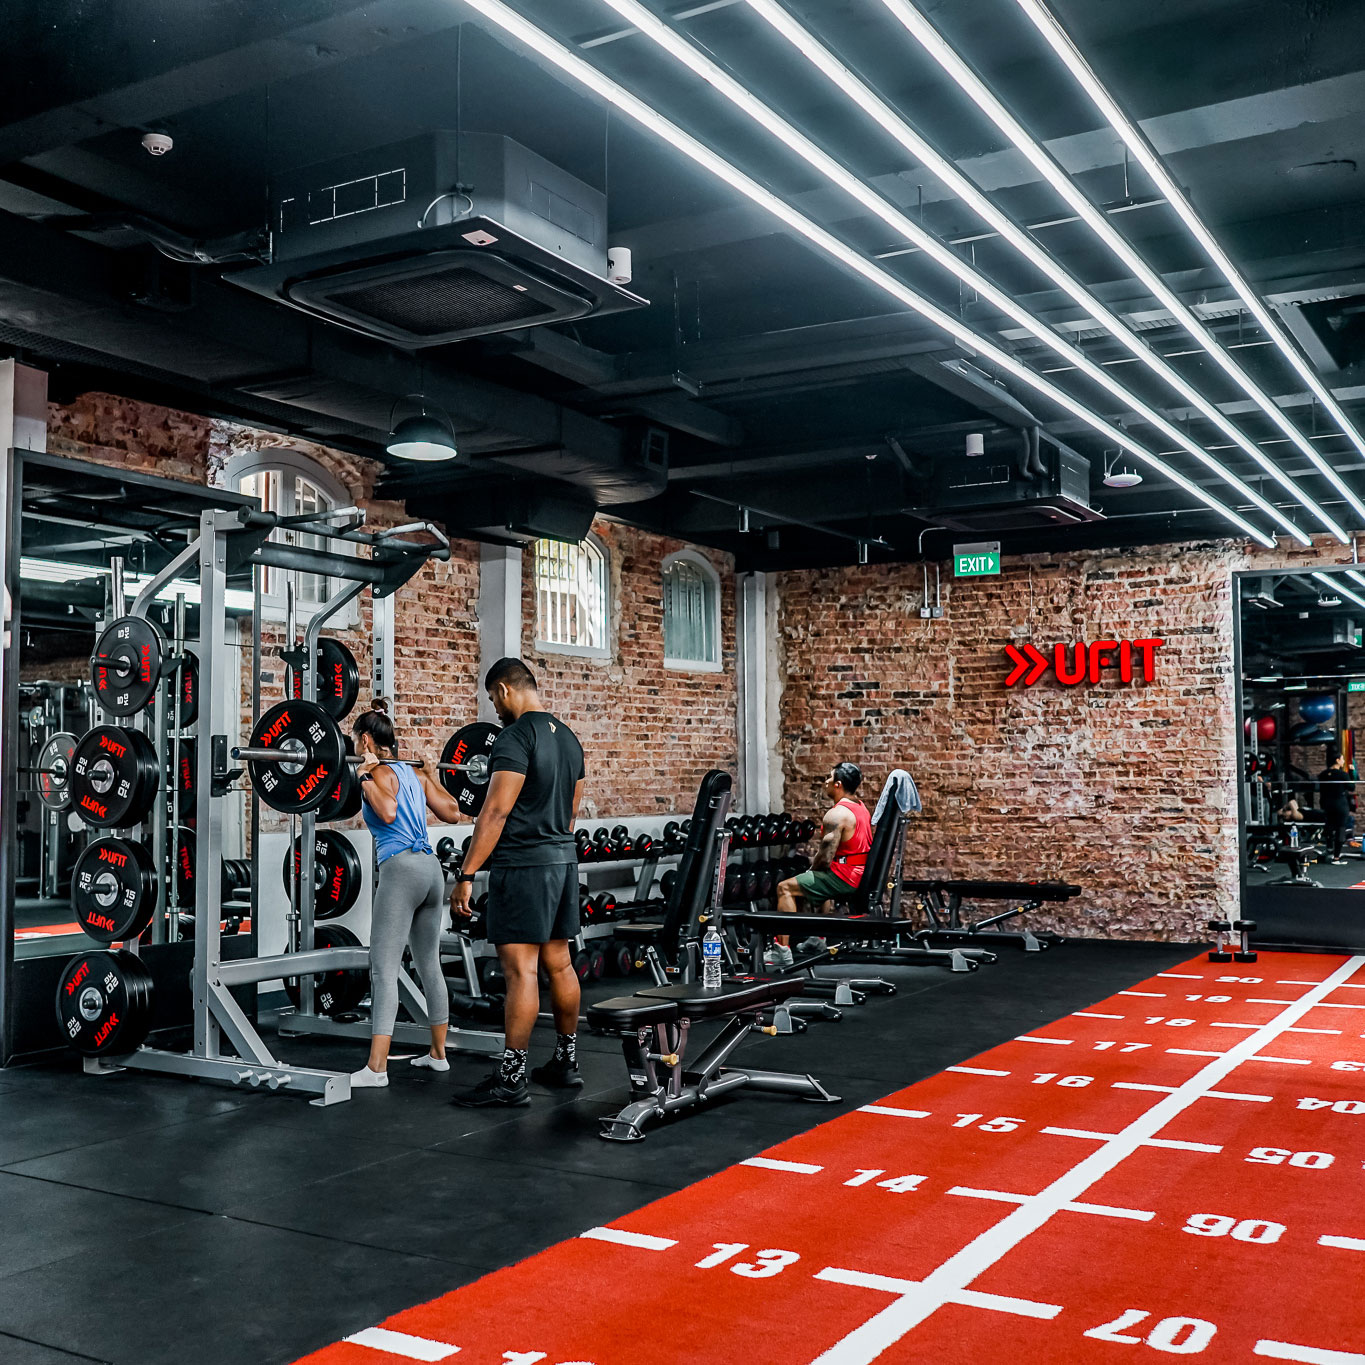 Personal trainer with woman squatting at power rack